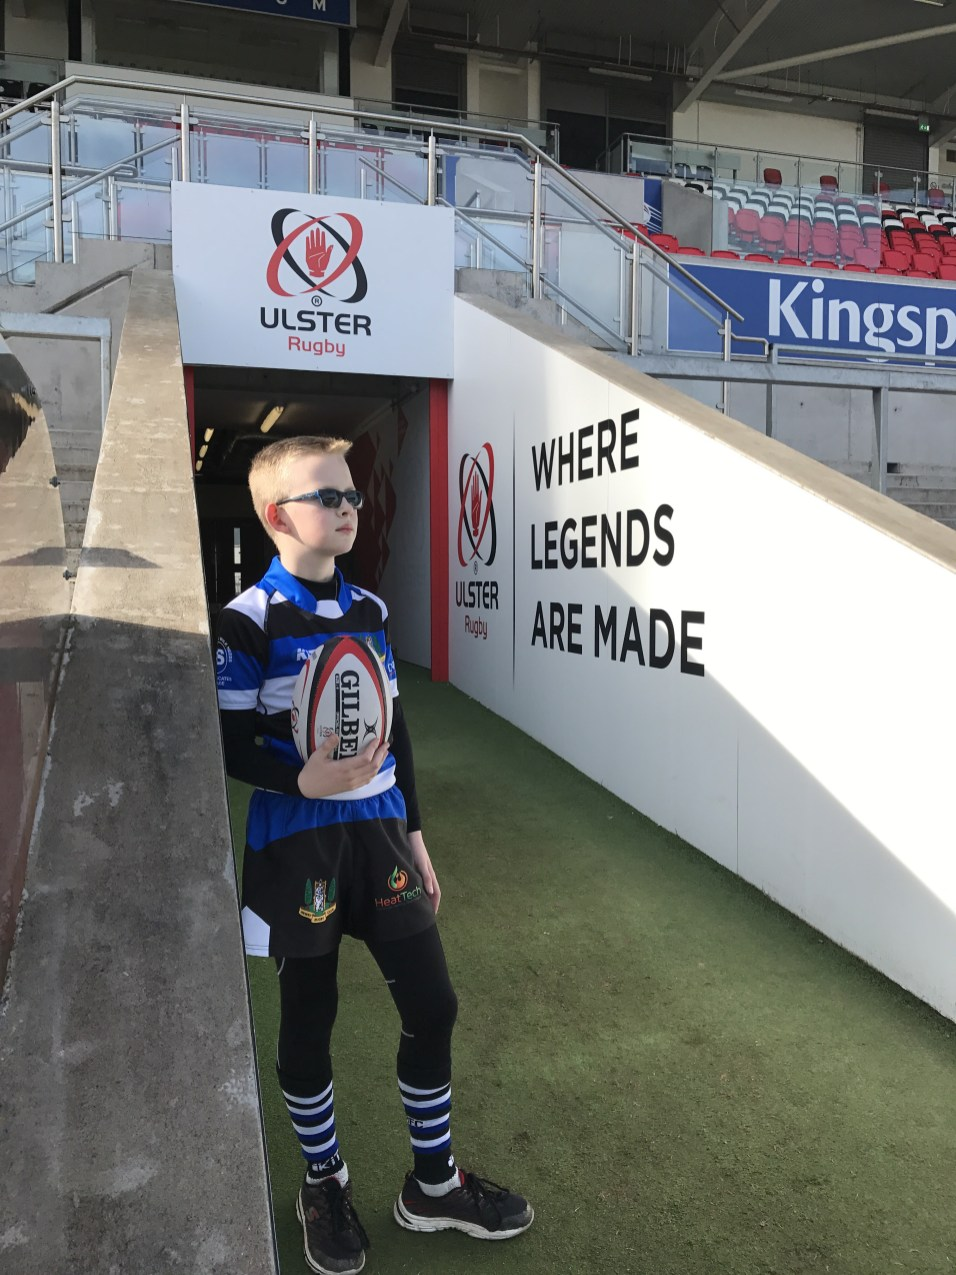 2016/17, Ulster Rugby